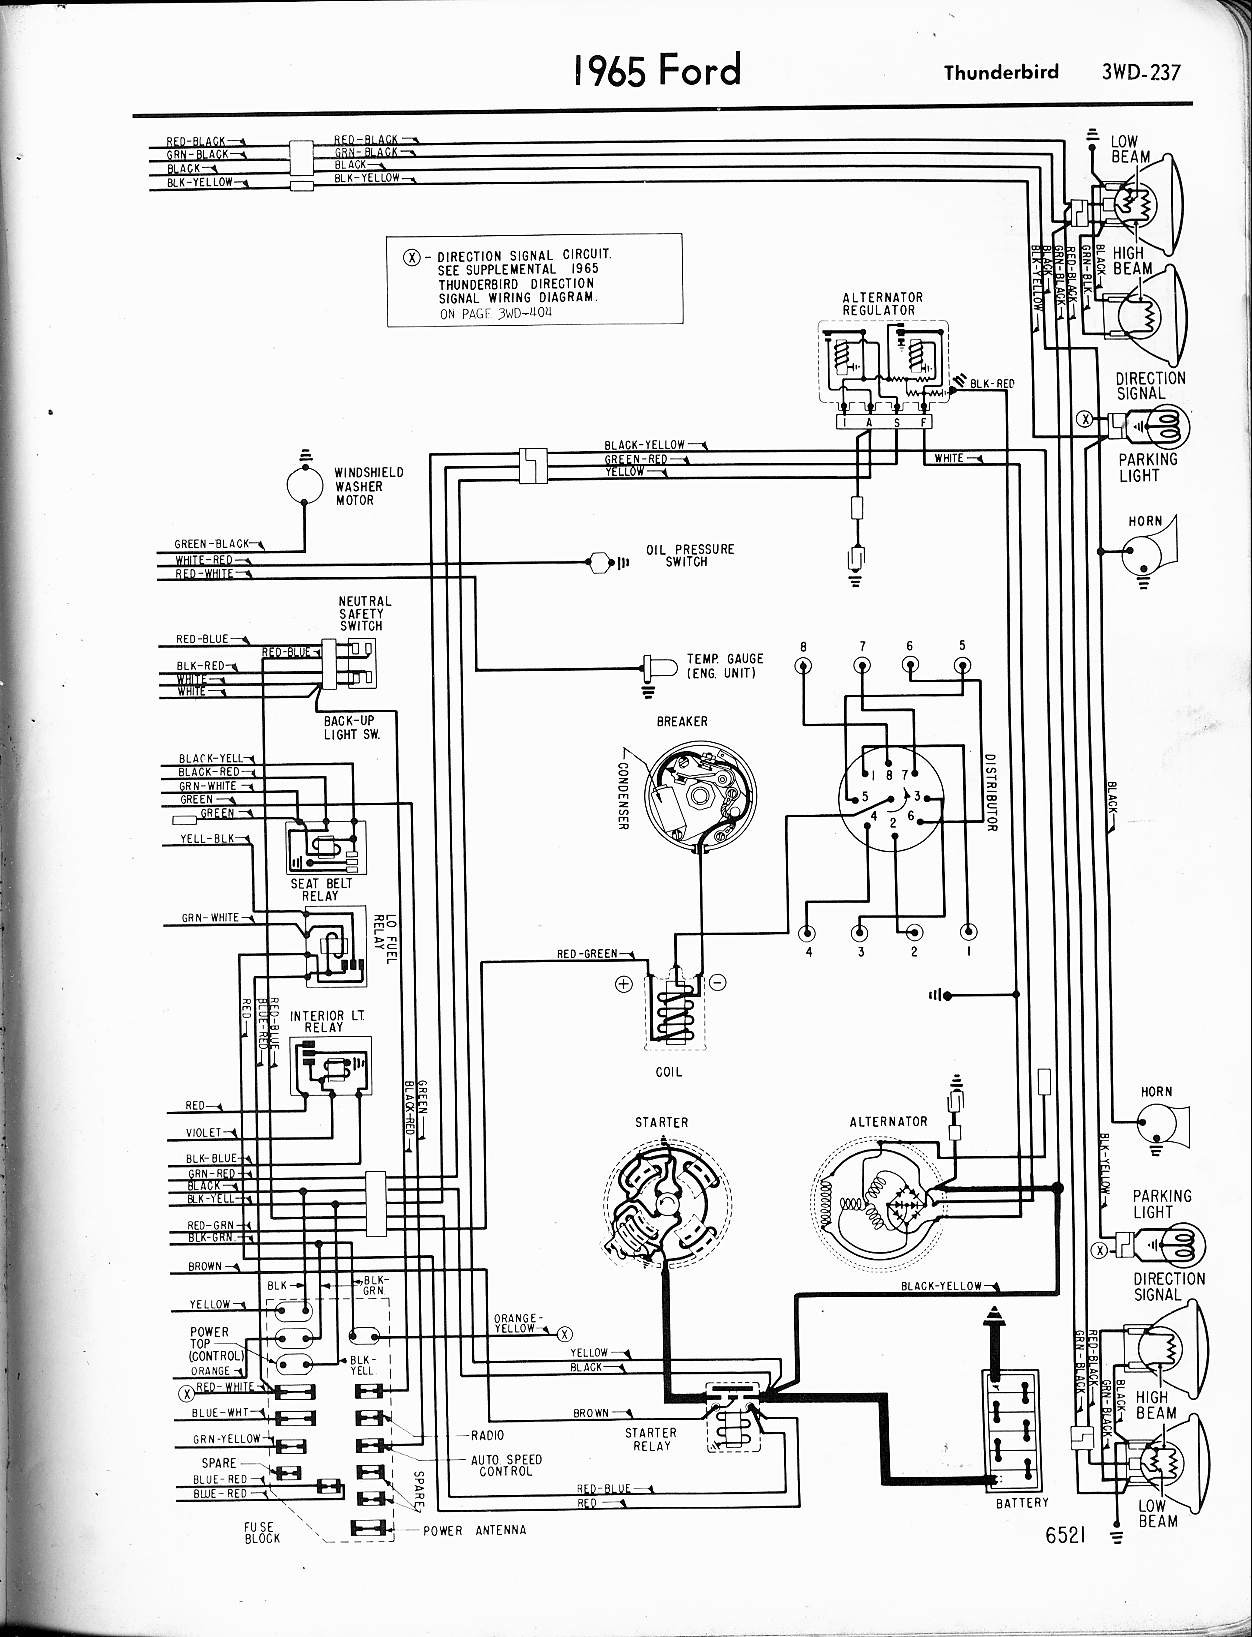 1965 ford t bird wiring diagram schematic rh yomelaniejo co 1963 Thunderbird 1968 thunderbird wiring diagram